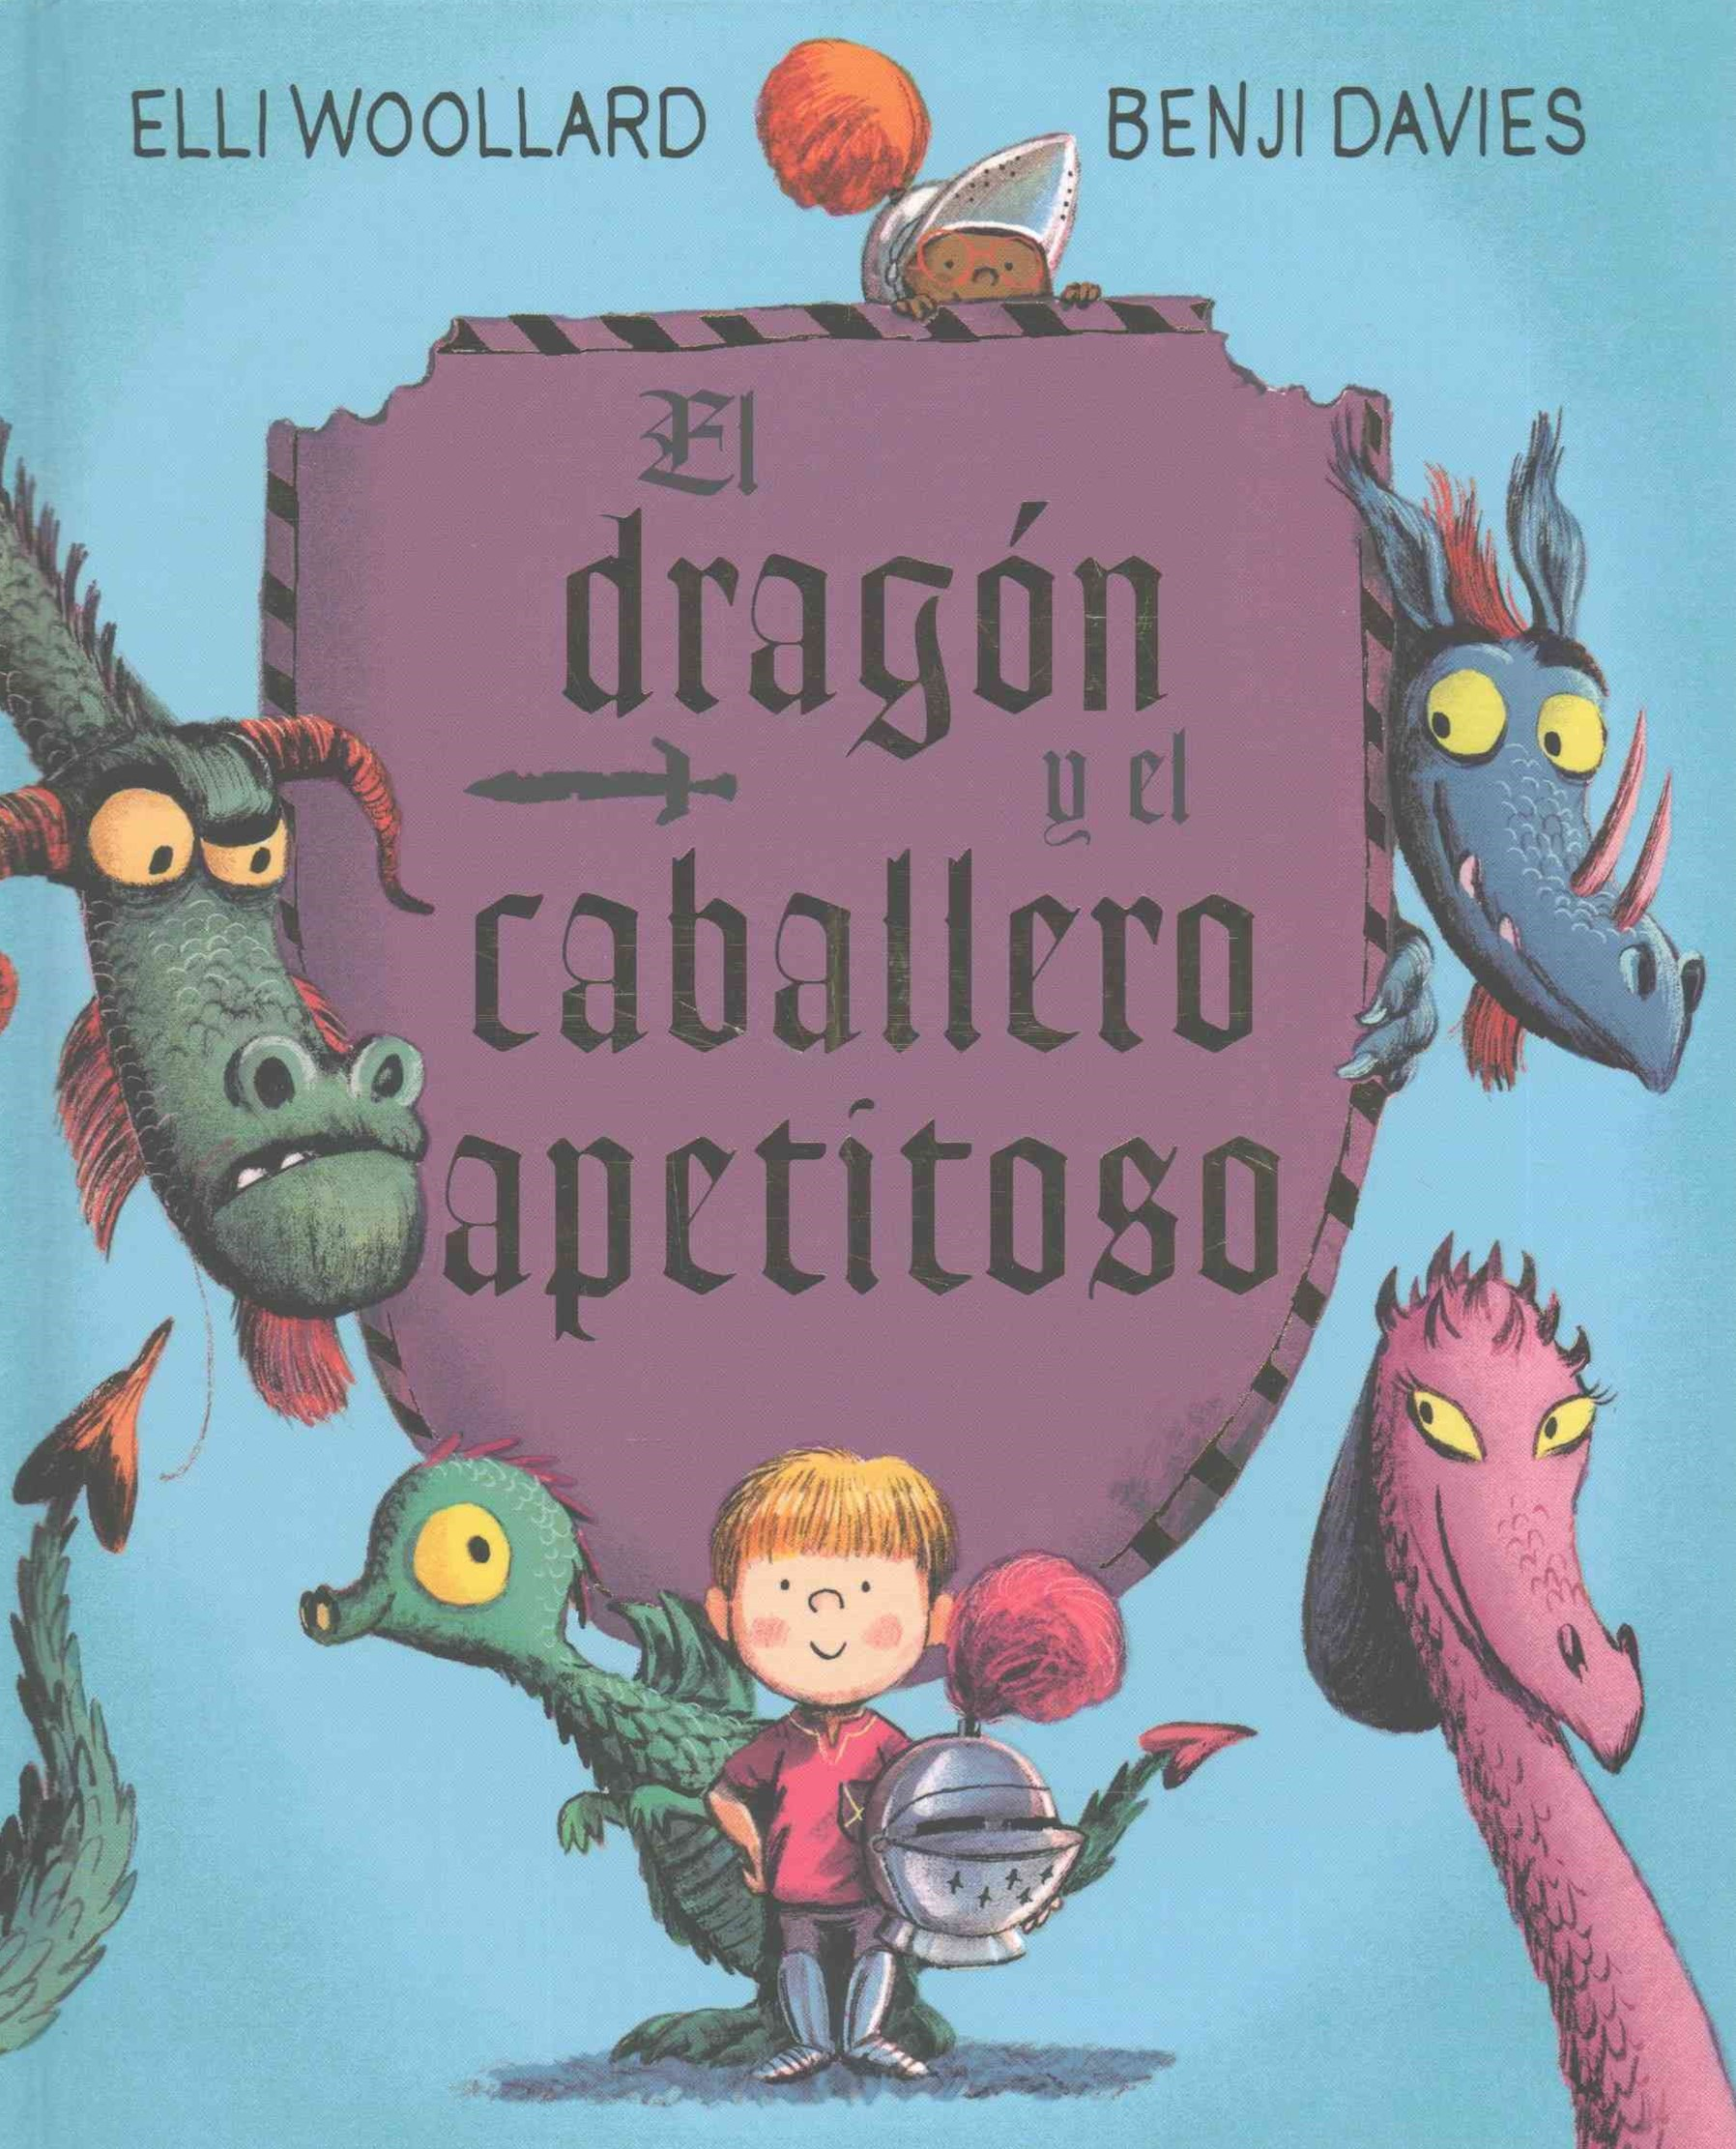 El dragon y el caballero apetitoso / The Dragon and the Nibblesome Knight